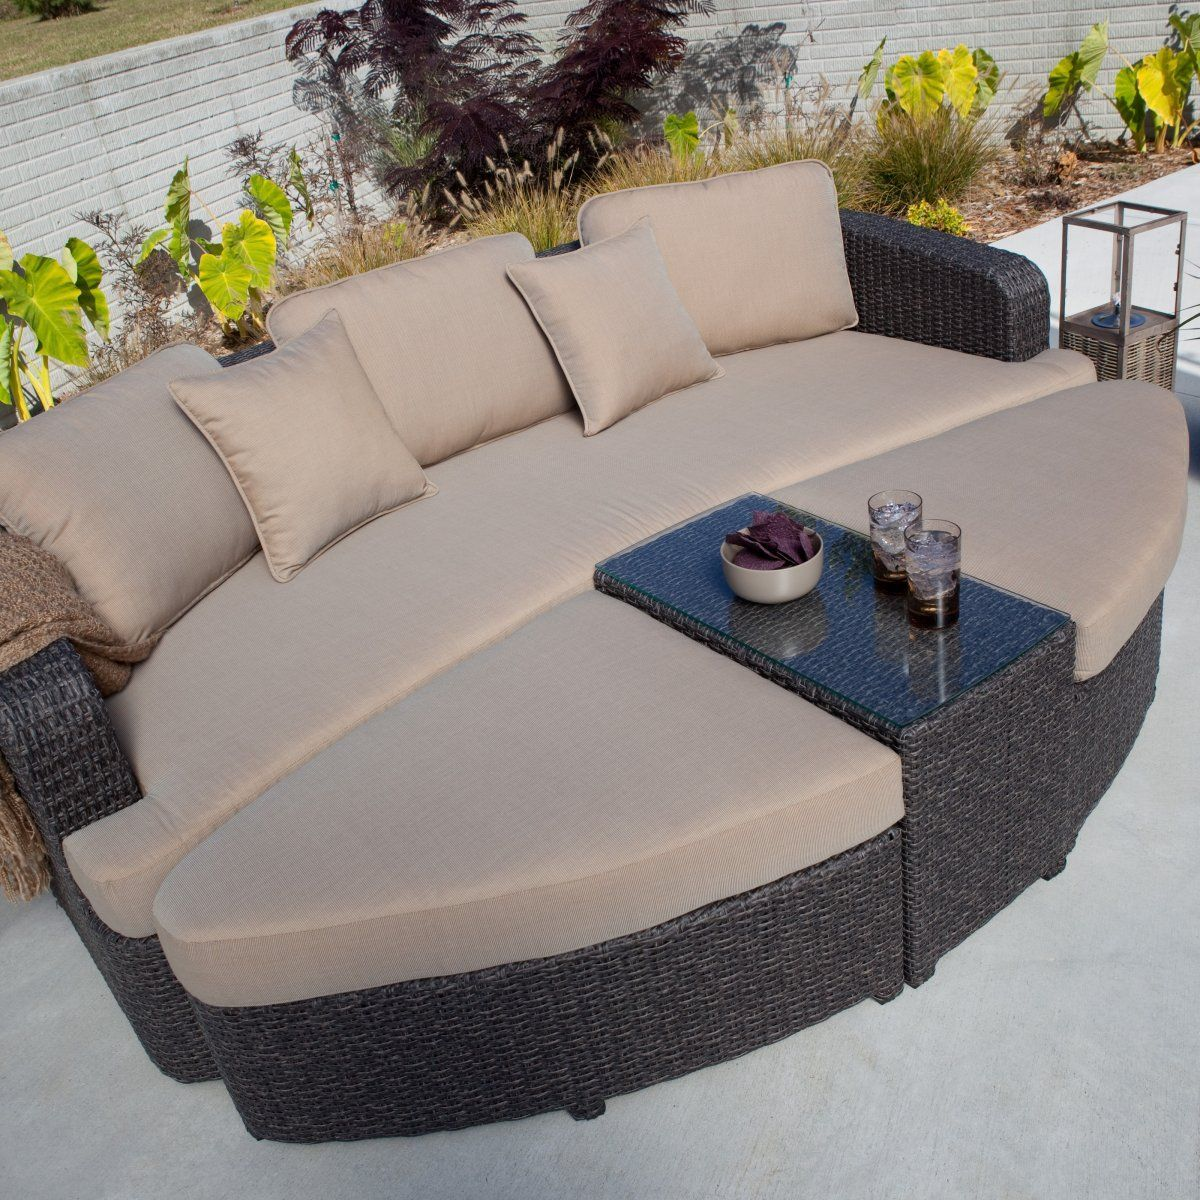 Montclair all weather wicker sectional sofa set outdoor wicker furniture at hayneedle